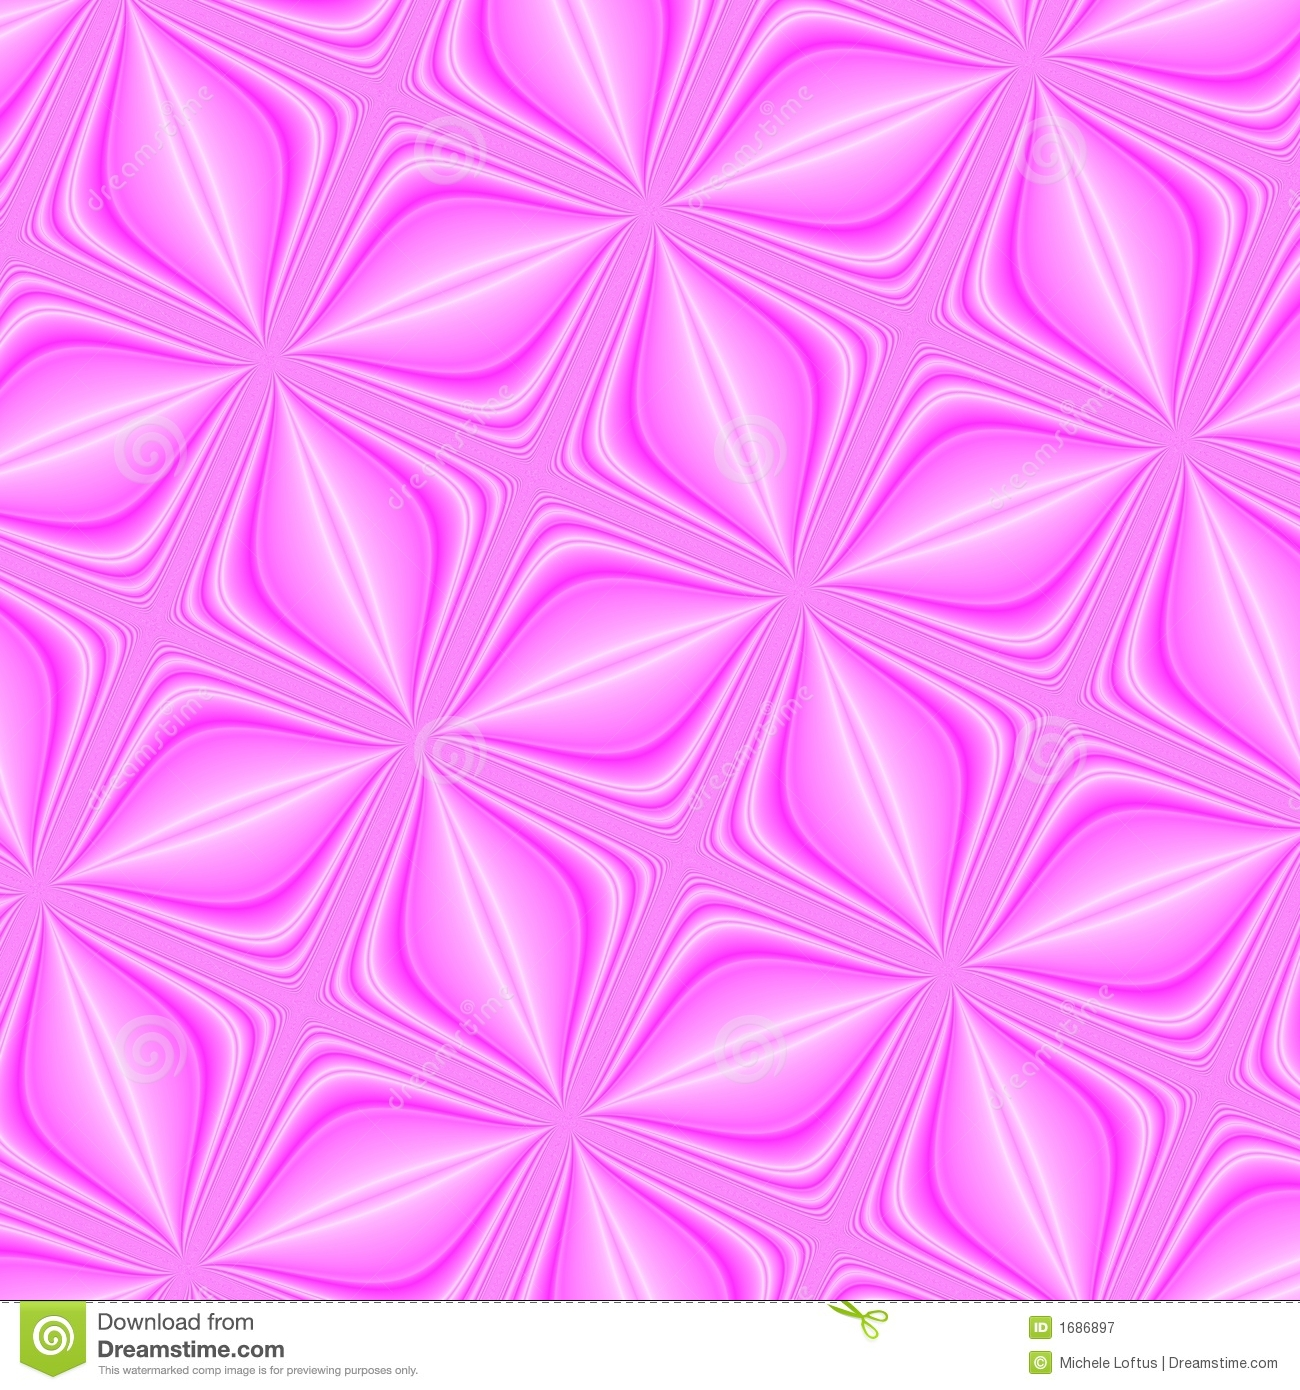 pink abstract background design template or wallpaper stock